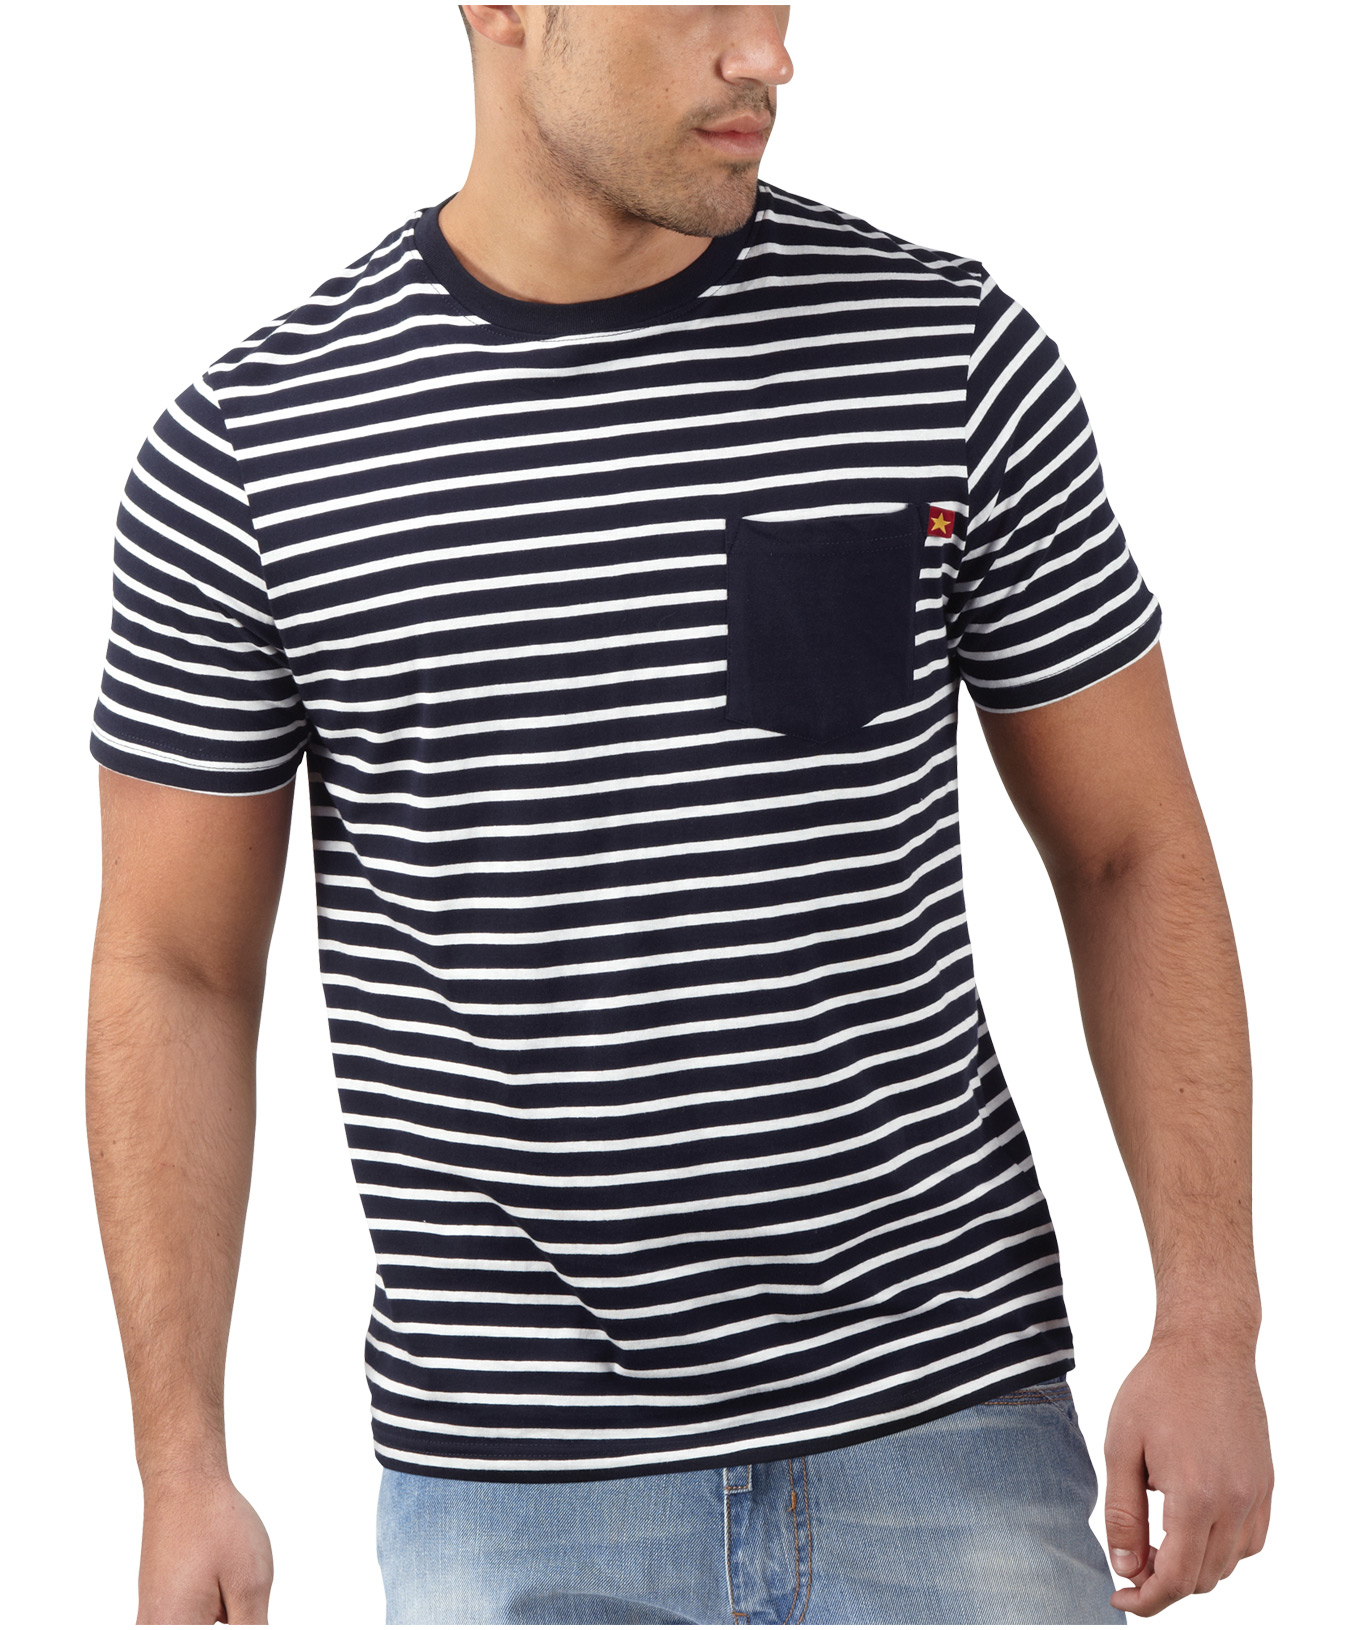 Best summer t shirts for men best men t shirts brands for Best t shirts for summer